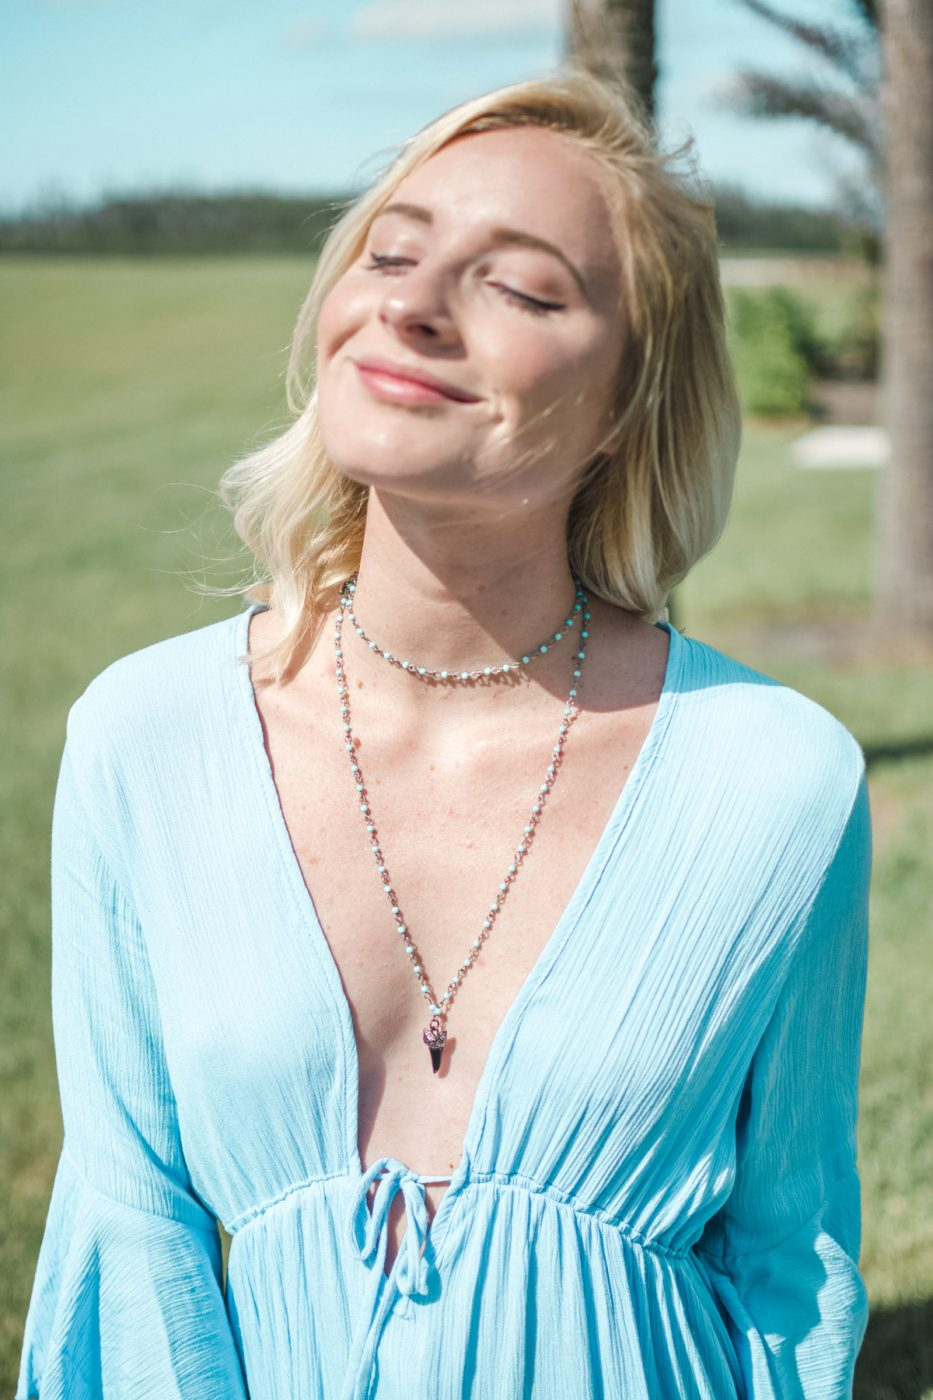 DIY shark tooth necklace with blue dress - Sweet Teal